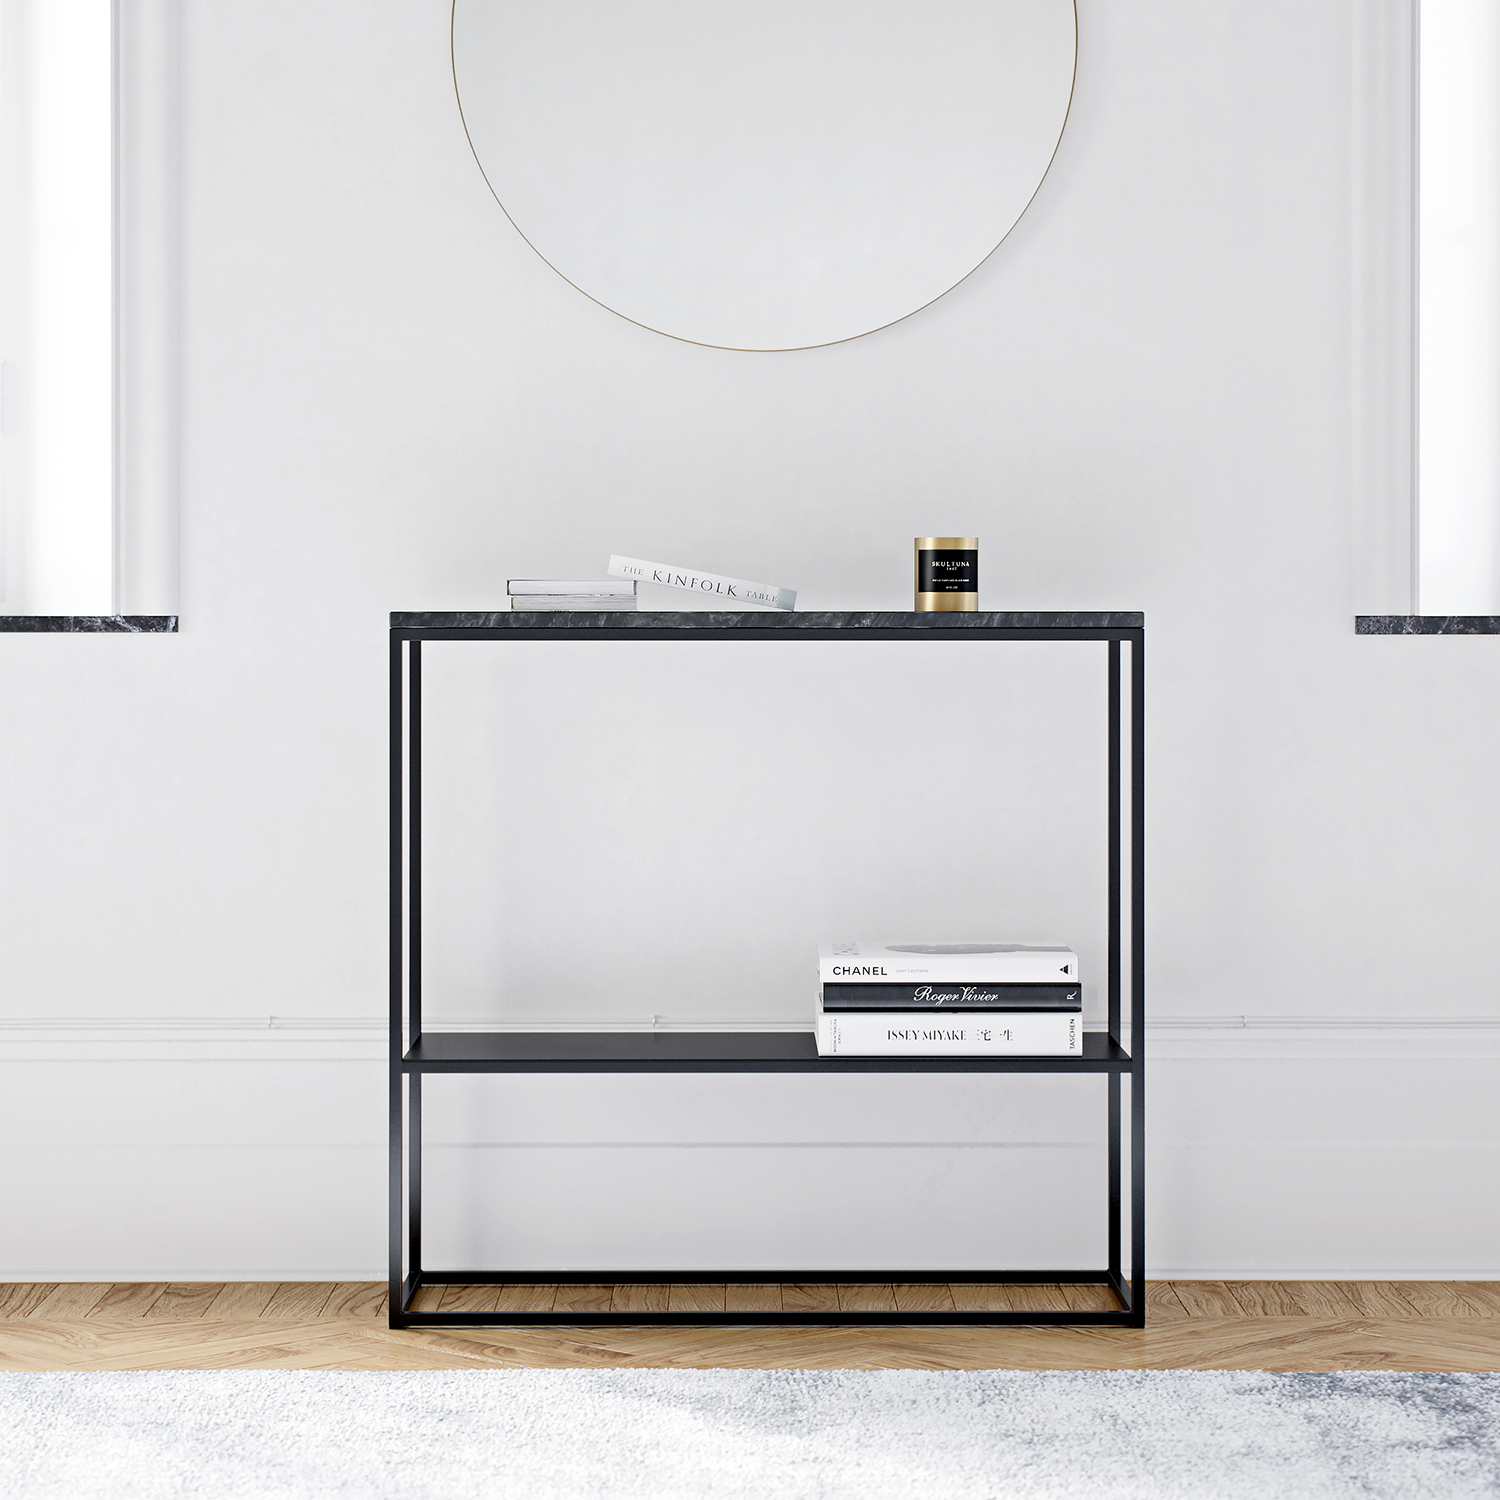 Marvelous Sideboard 90x80 cm, Marmor Decotique @ RoyalDesign